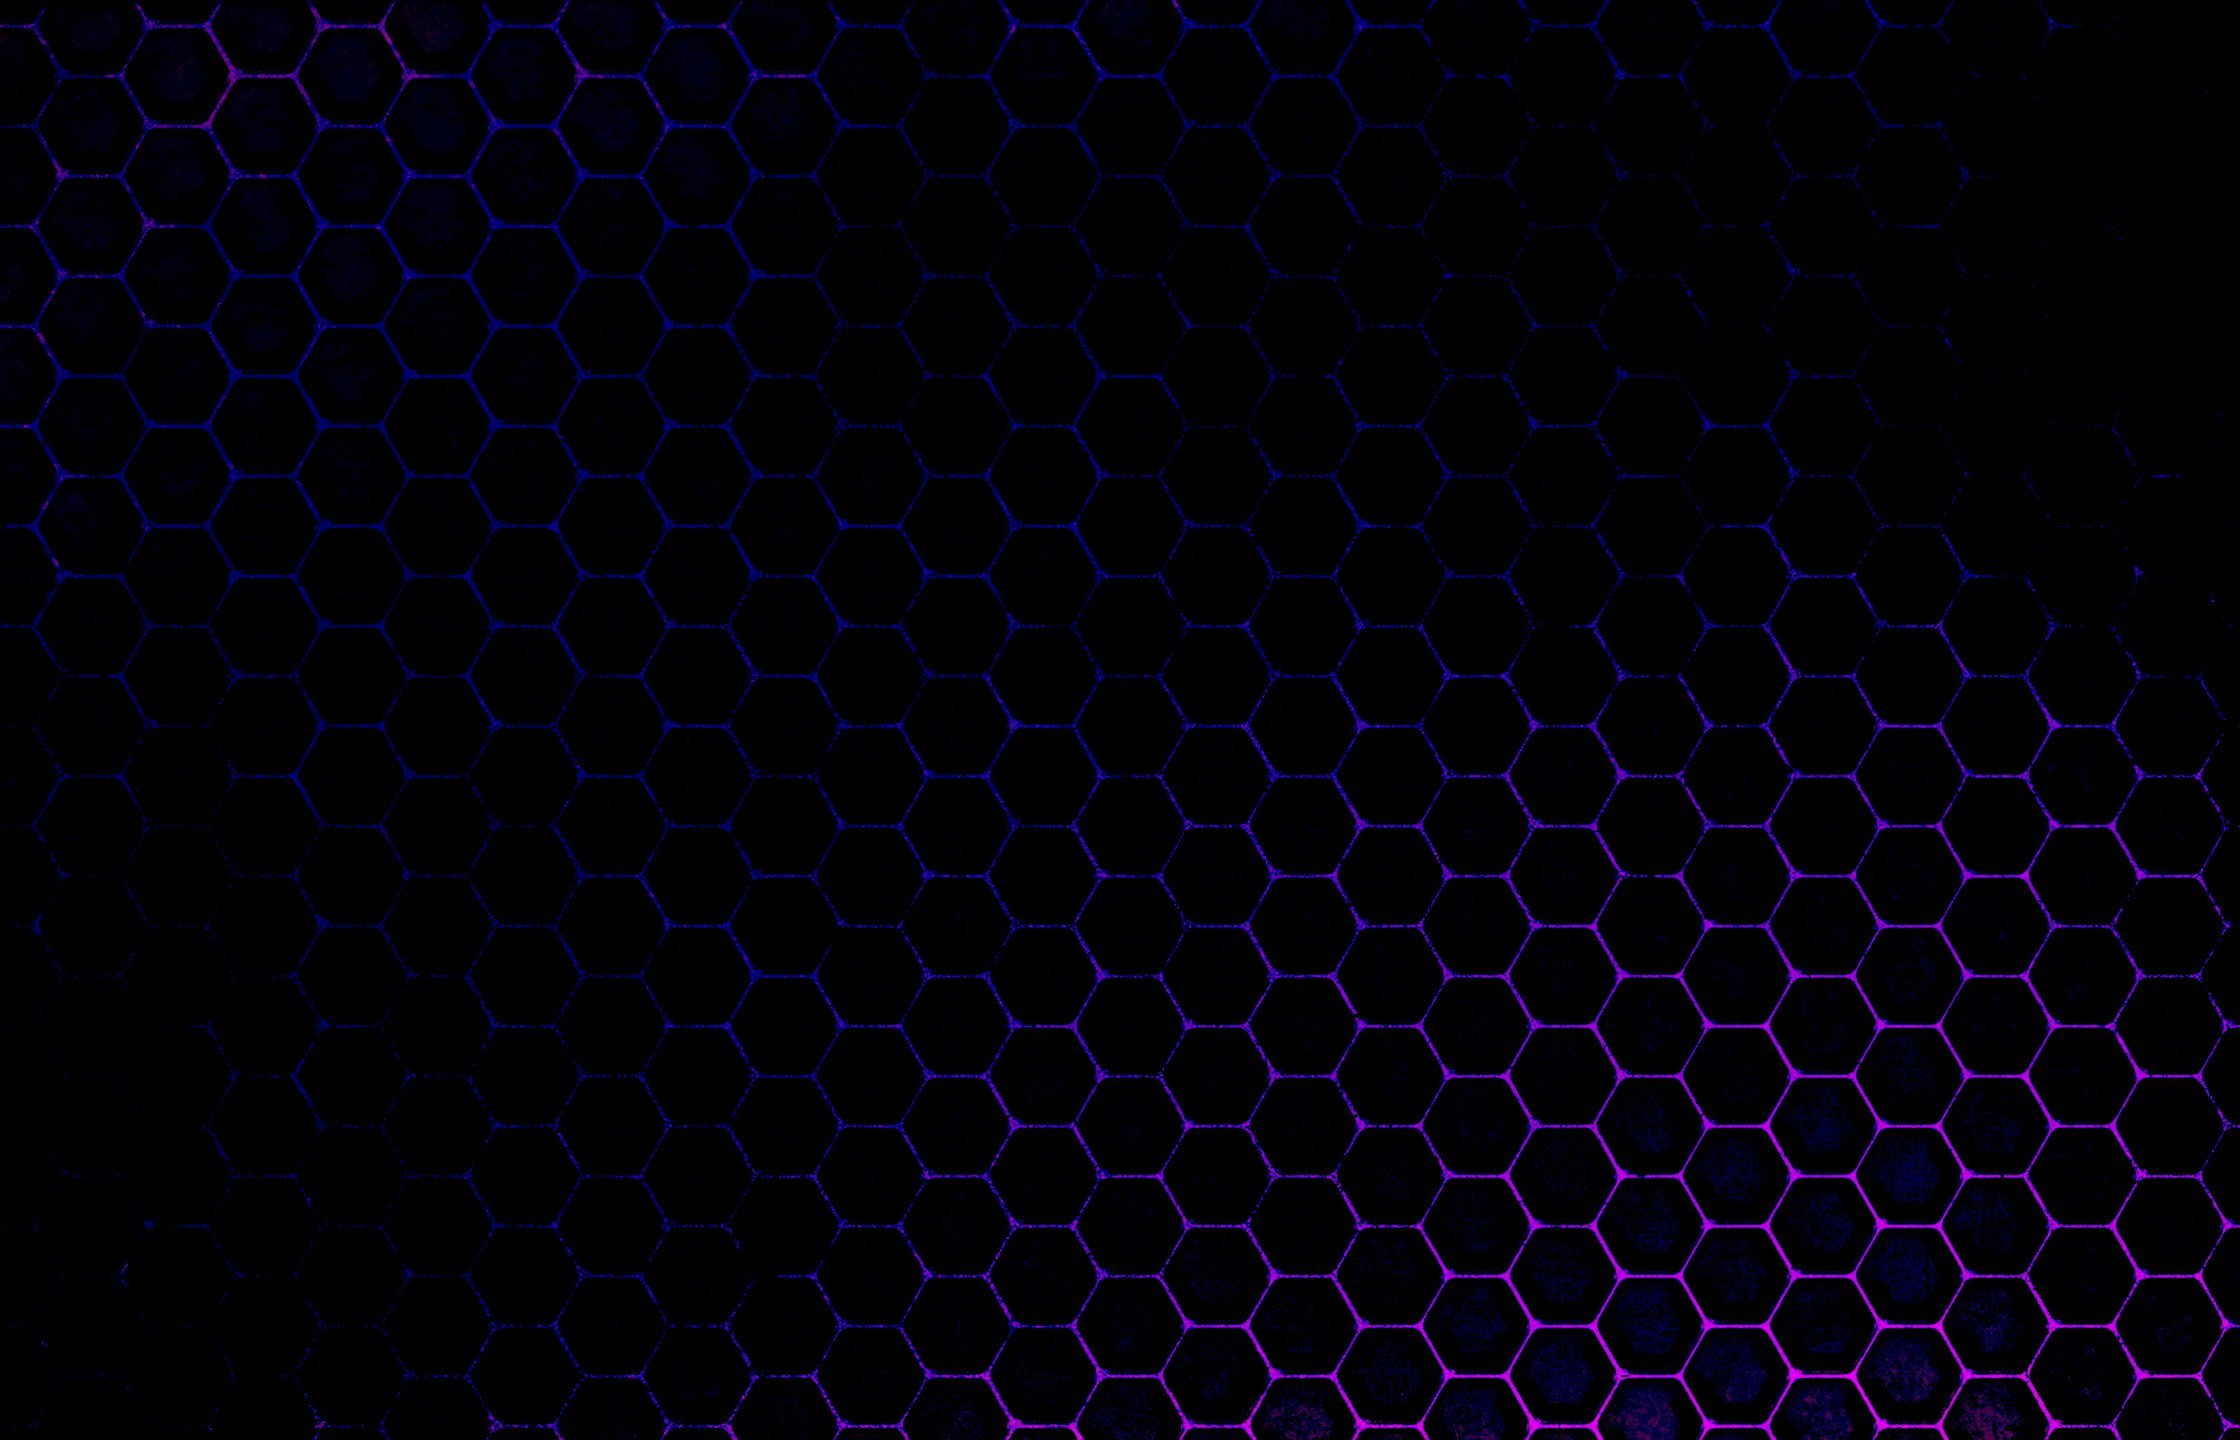 Black Wallpaper In FHD For Free Download Android Desktop 2240x1440